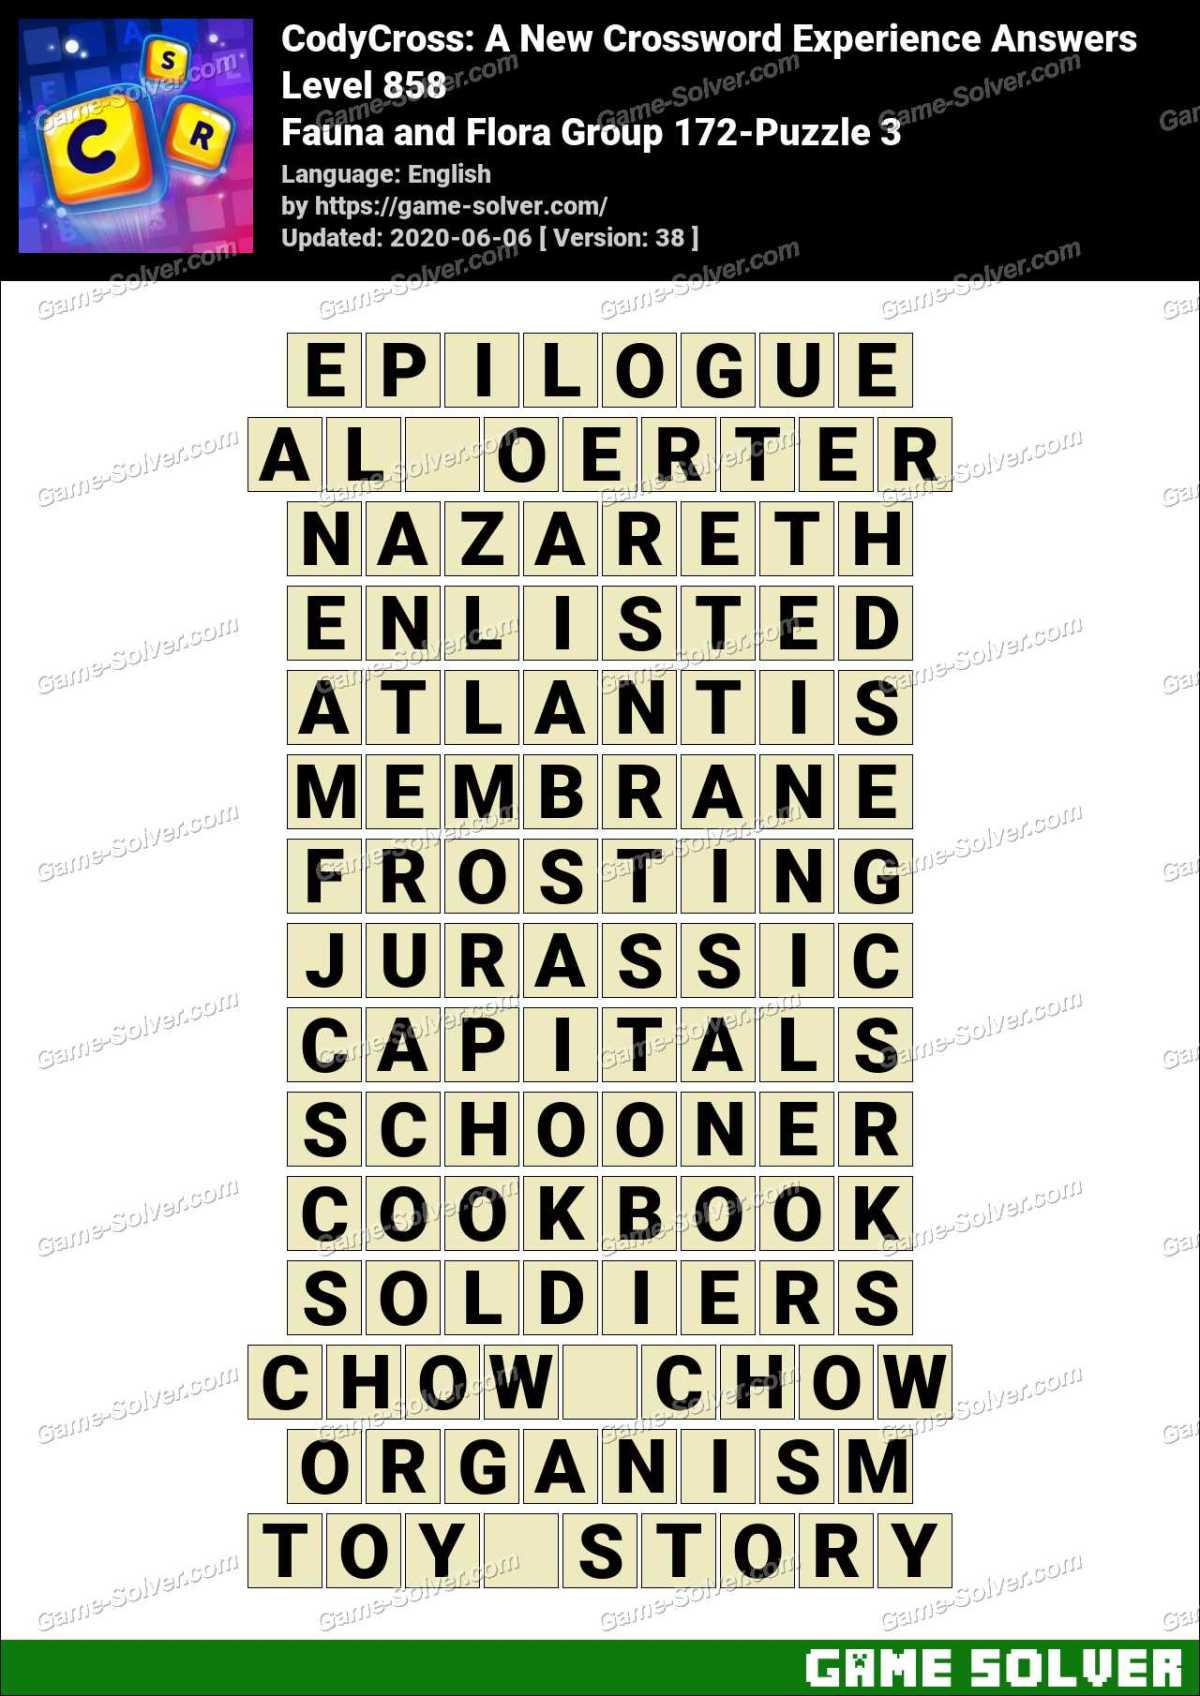 CodyCross Fauna and Flora Group 172-Puzzle 3 Answers